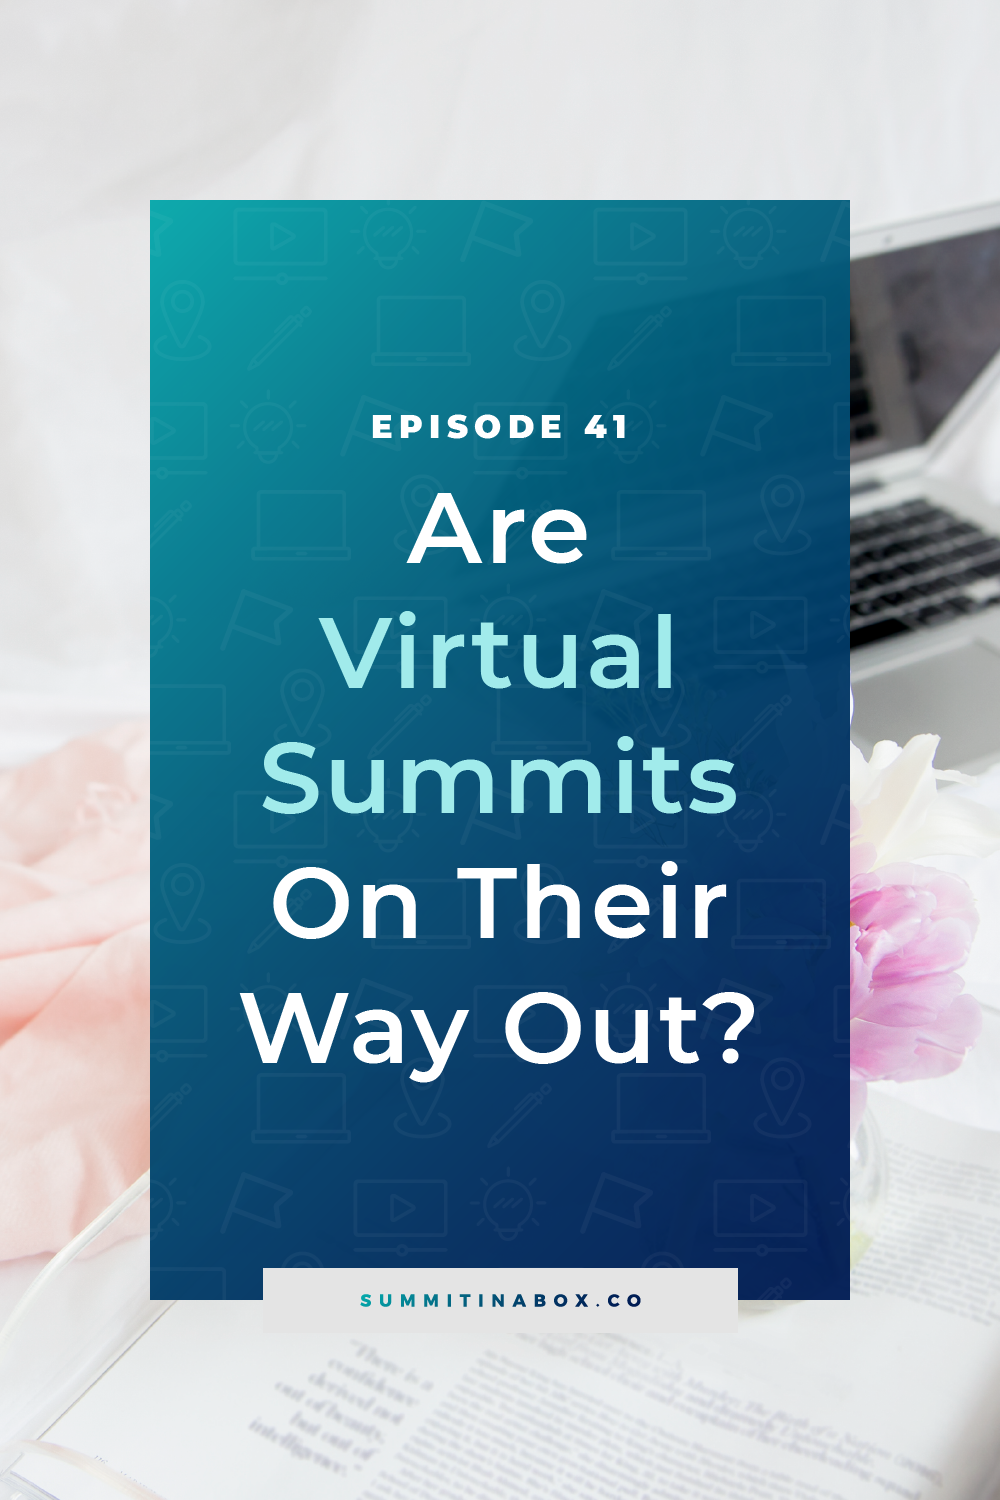 Are virtual summits on their way out? Let's cover why some might think so, my response, and what summits are indeed on their way out, rightfully so.